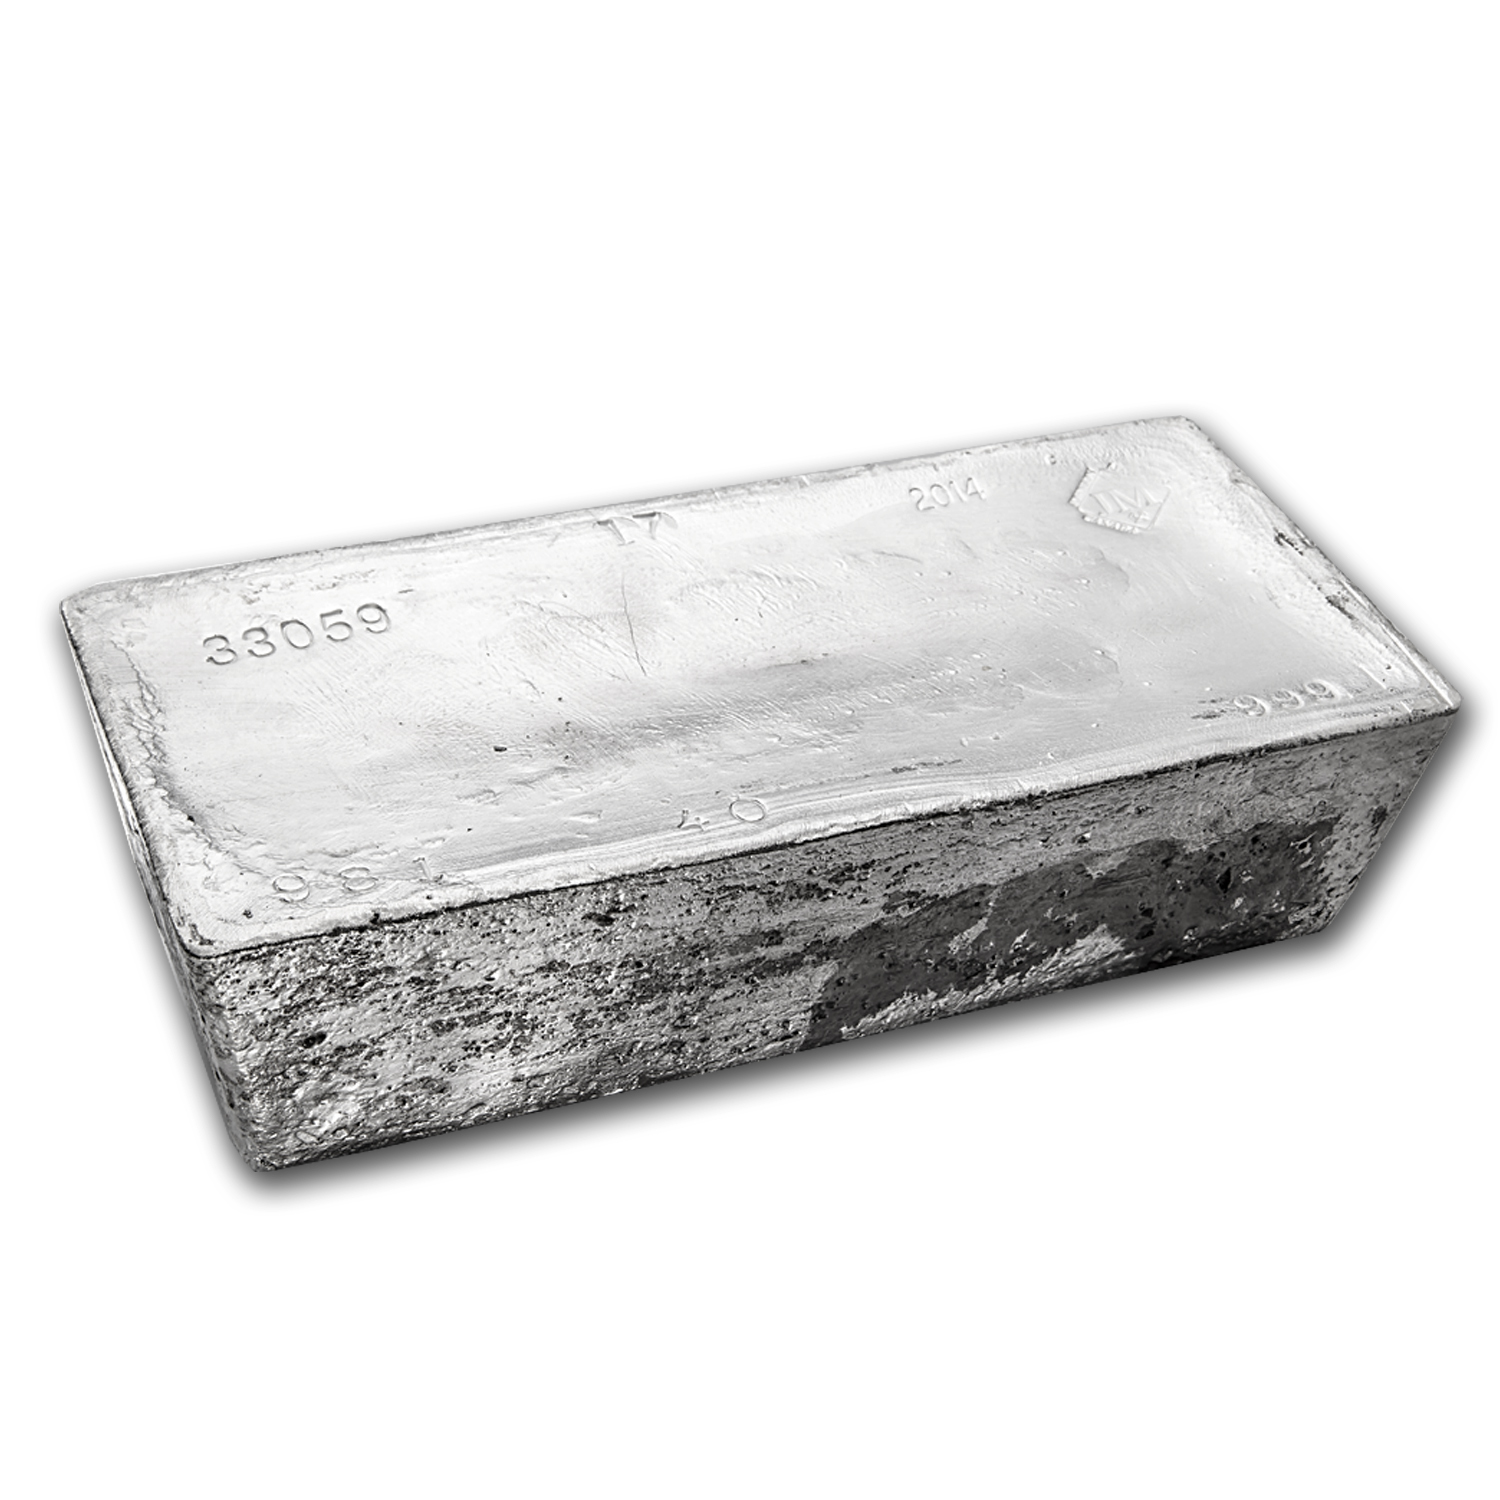 975.10 oz Silver Bars - Johnson Matthey